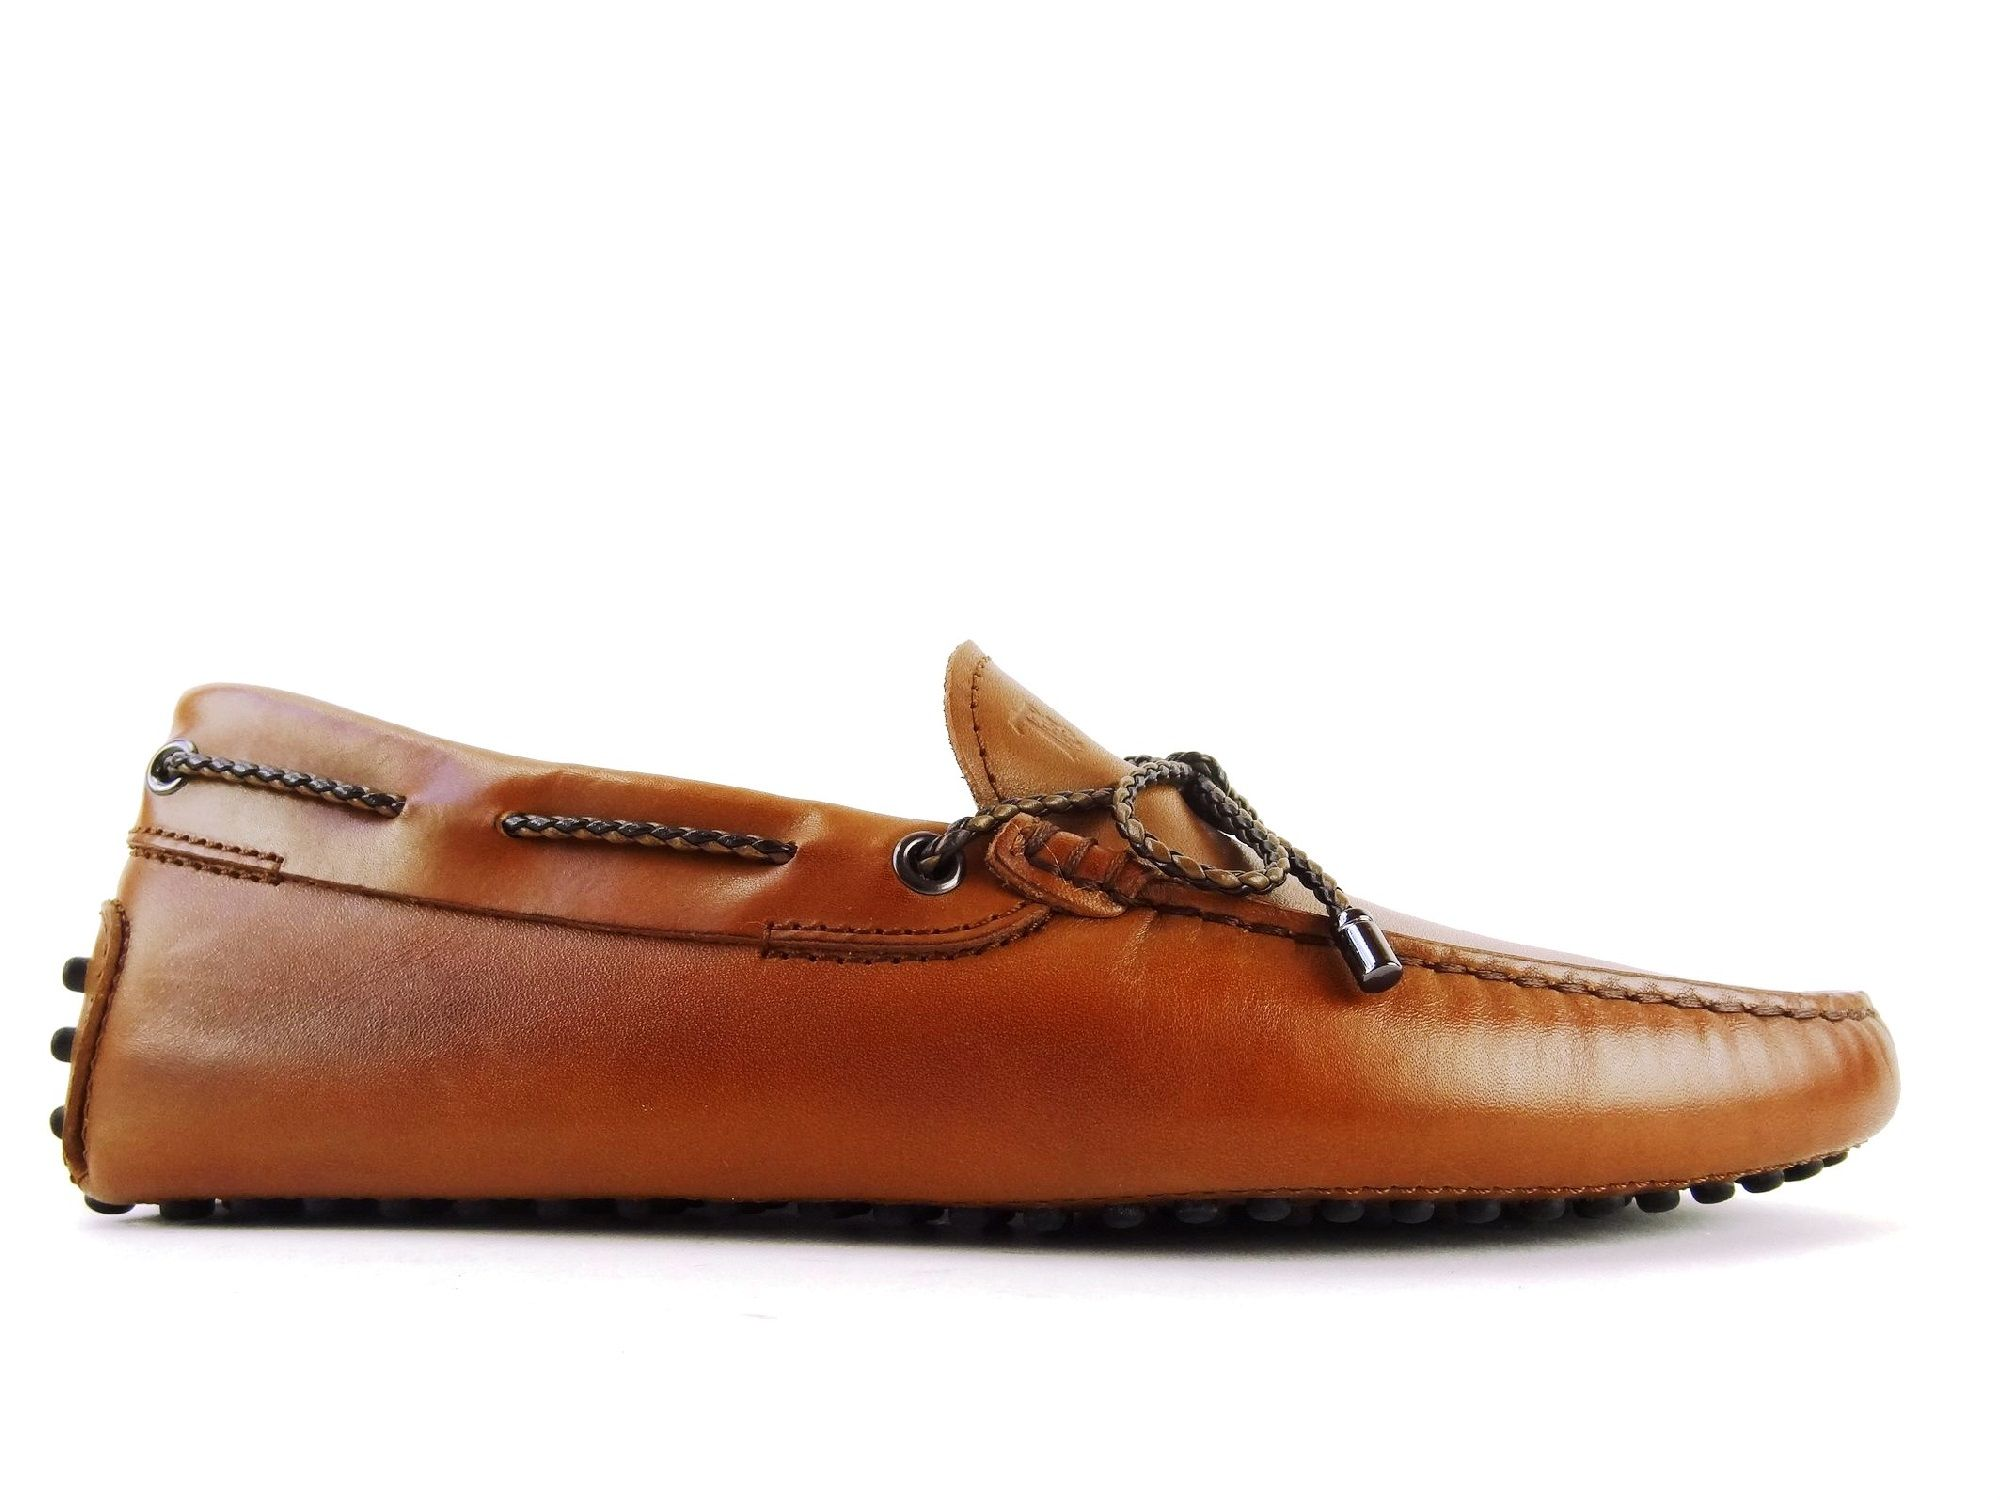 Tod's Homme tod's mocassin cuir grainé gold Marron - Chaussures Mocassins Homme